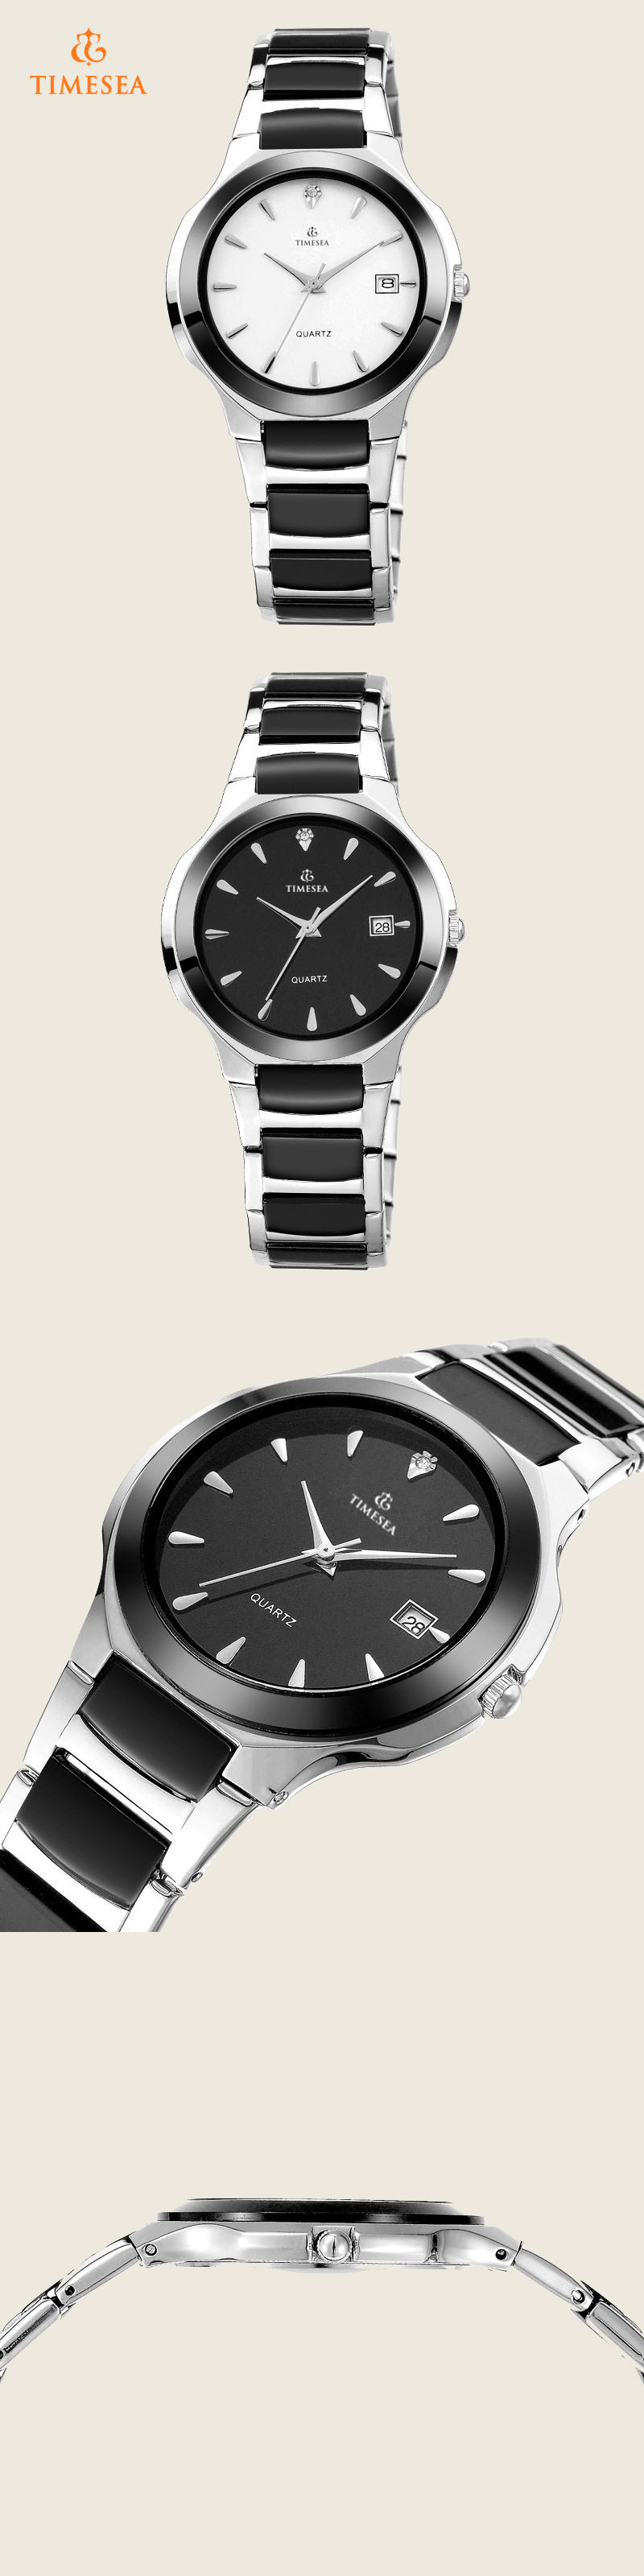 Stainless Steel Chain Black Color Wrist Watches for Men 72330